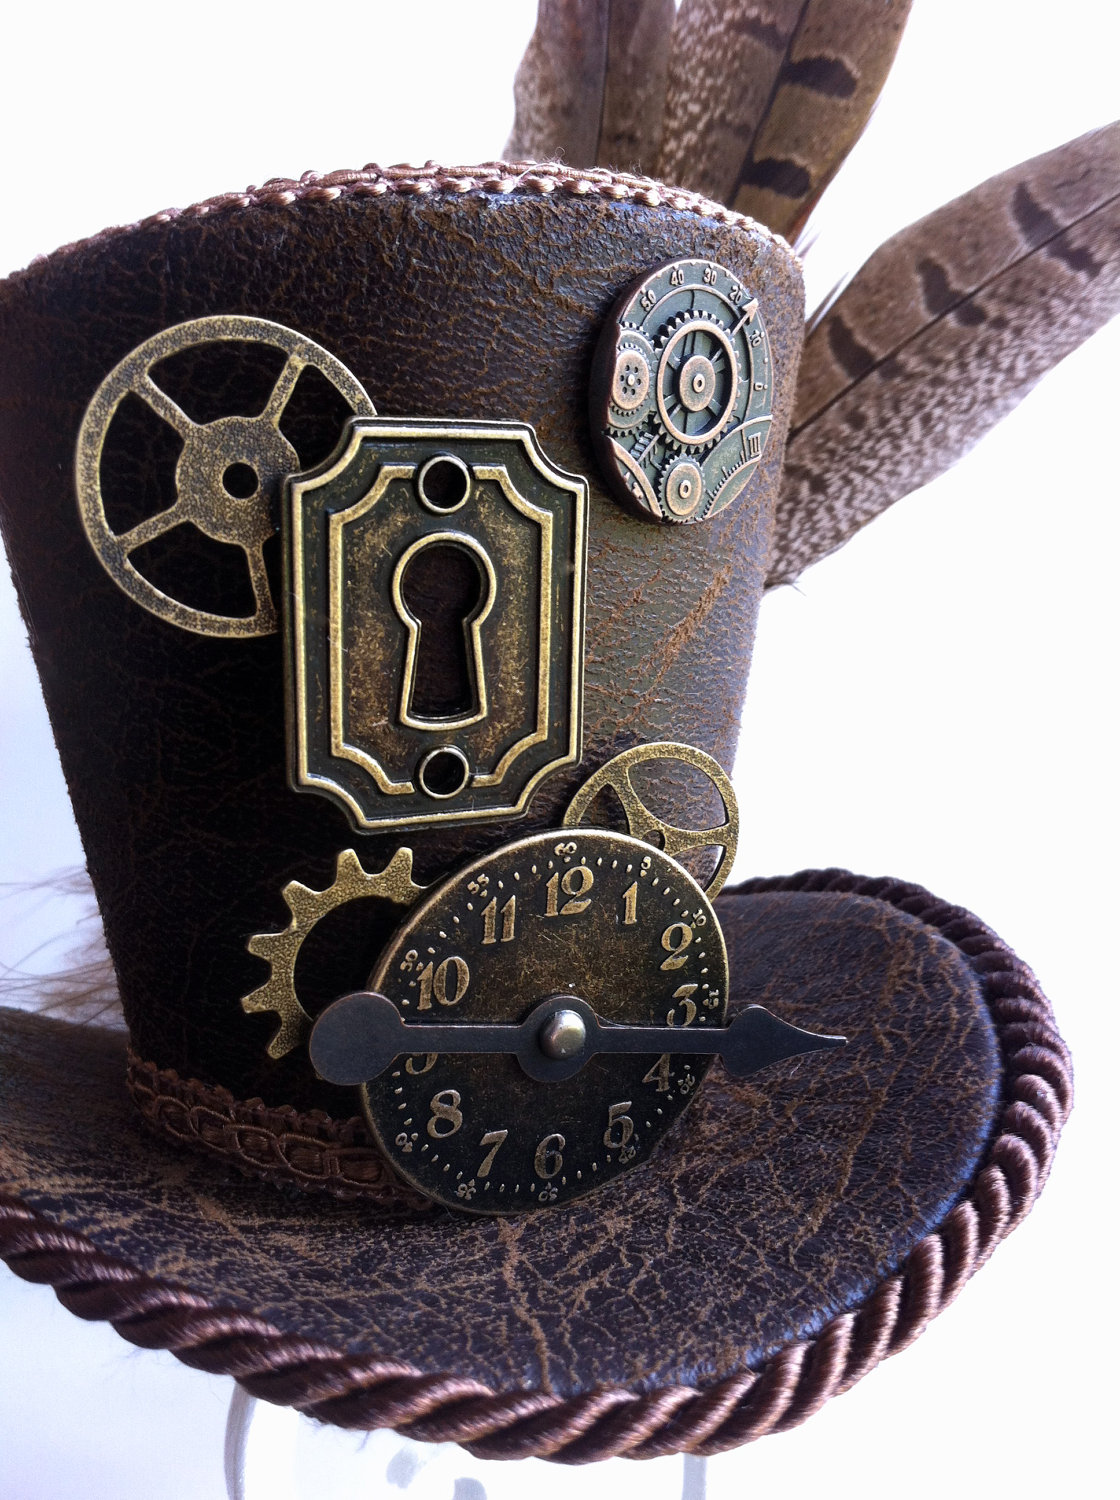 I've been #Steampunk'd - books, art, fashion, games & more (part 1 of 4)